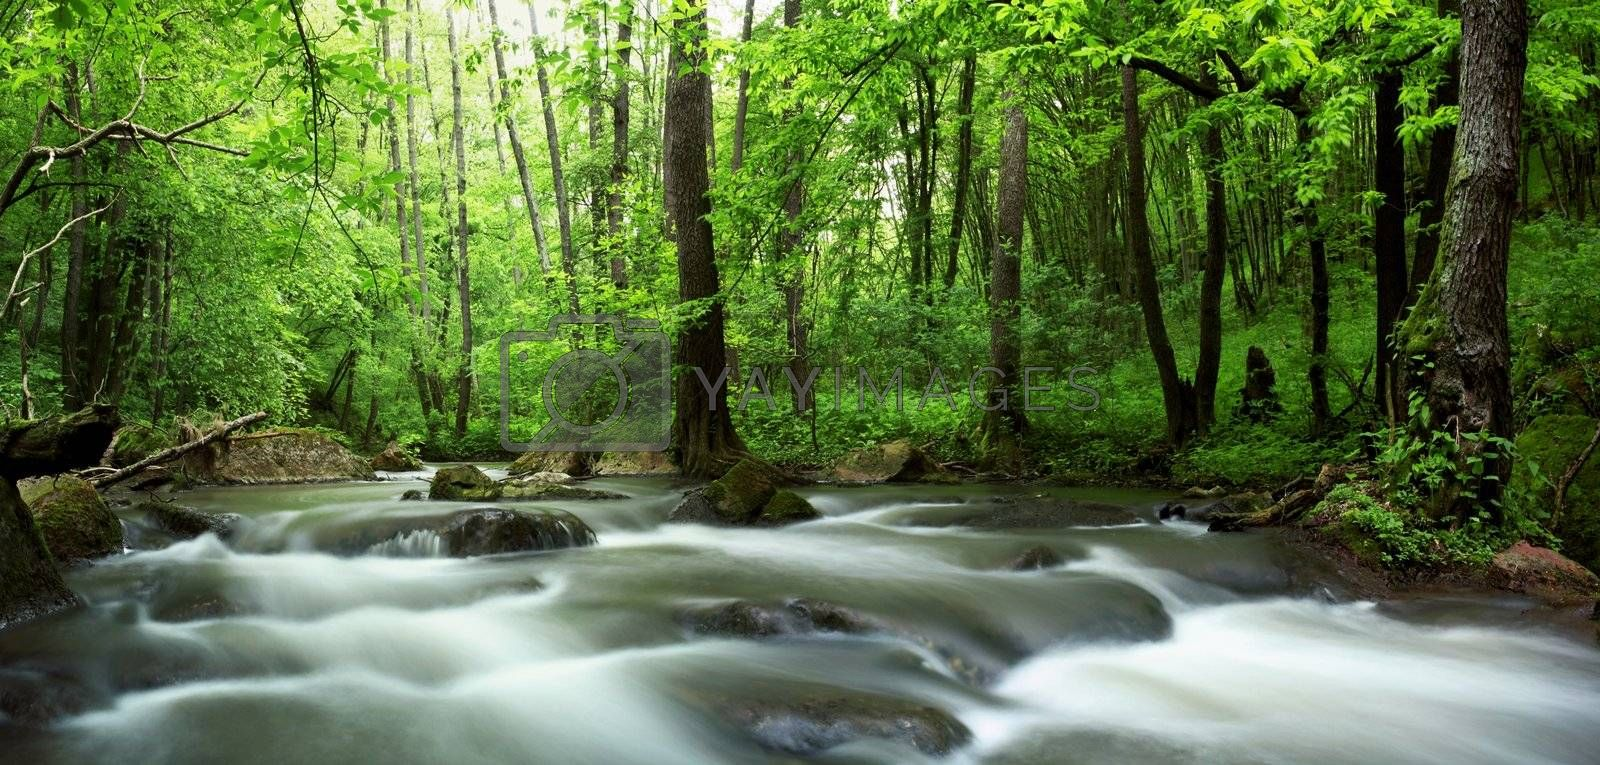 An image of a river in green forest